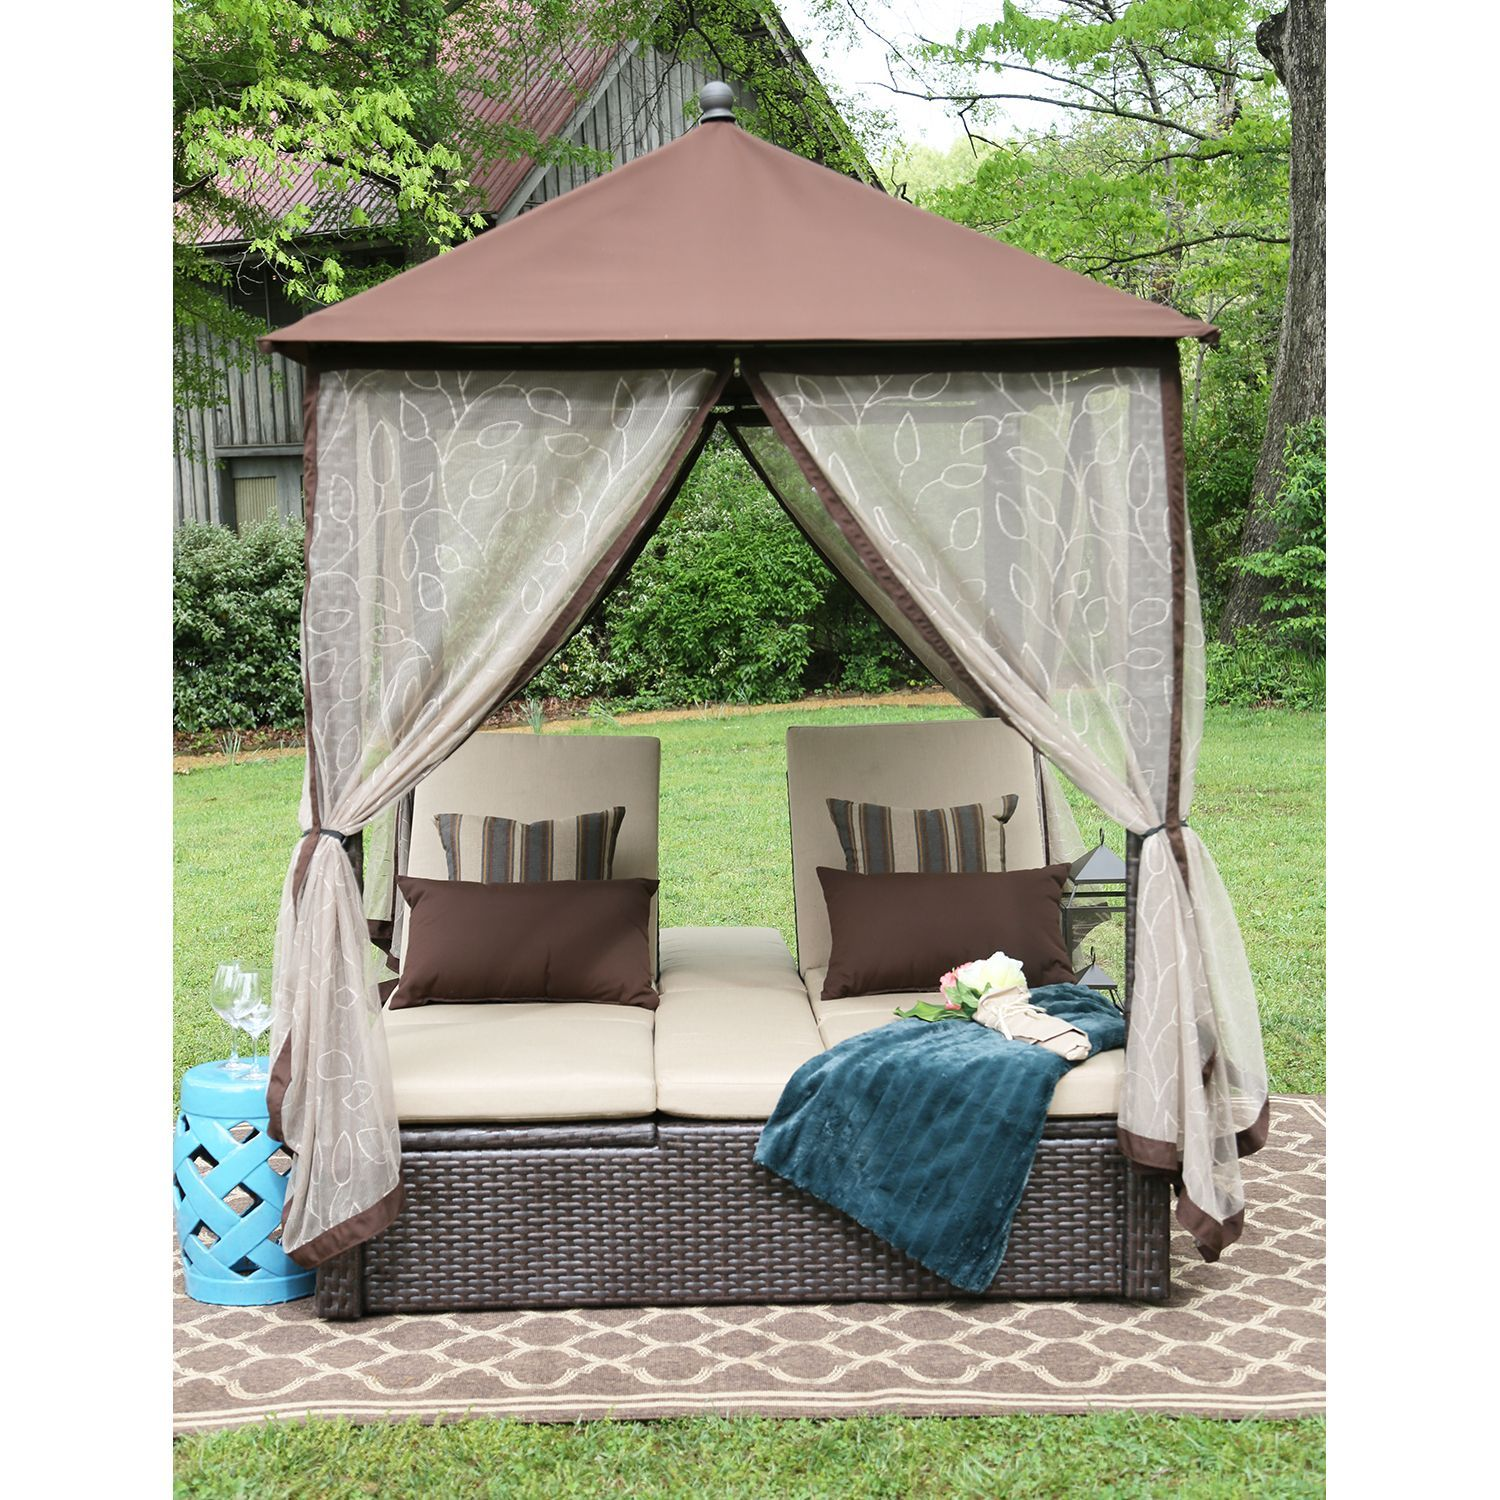 Arden Double Chaise Gazebo - Samu0027s Club  sc 1 st  Pinterest : double chaise lounge with canopy - Sectionals, Sofas & Couches